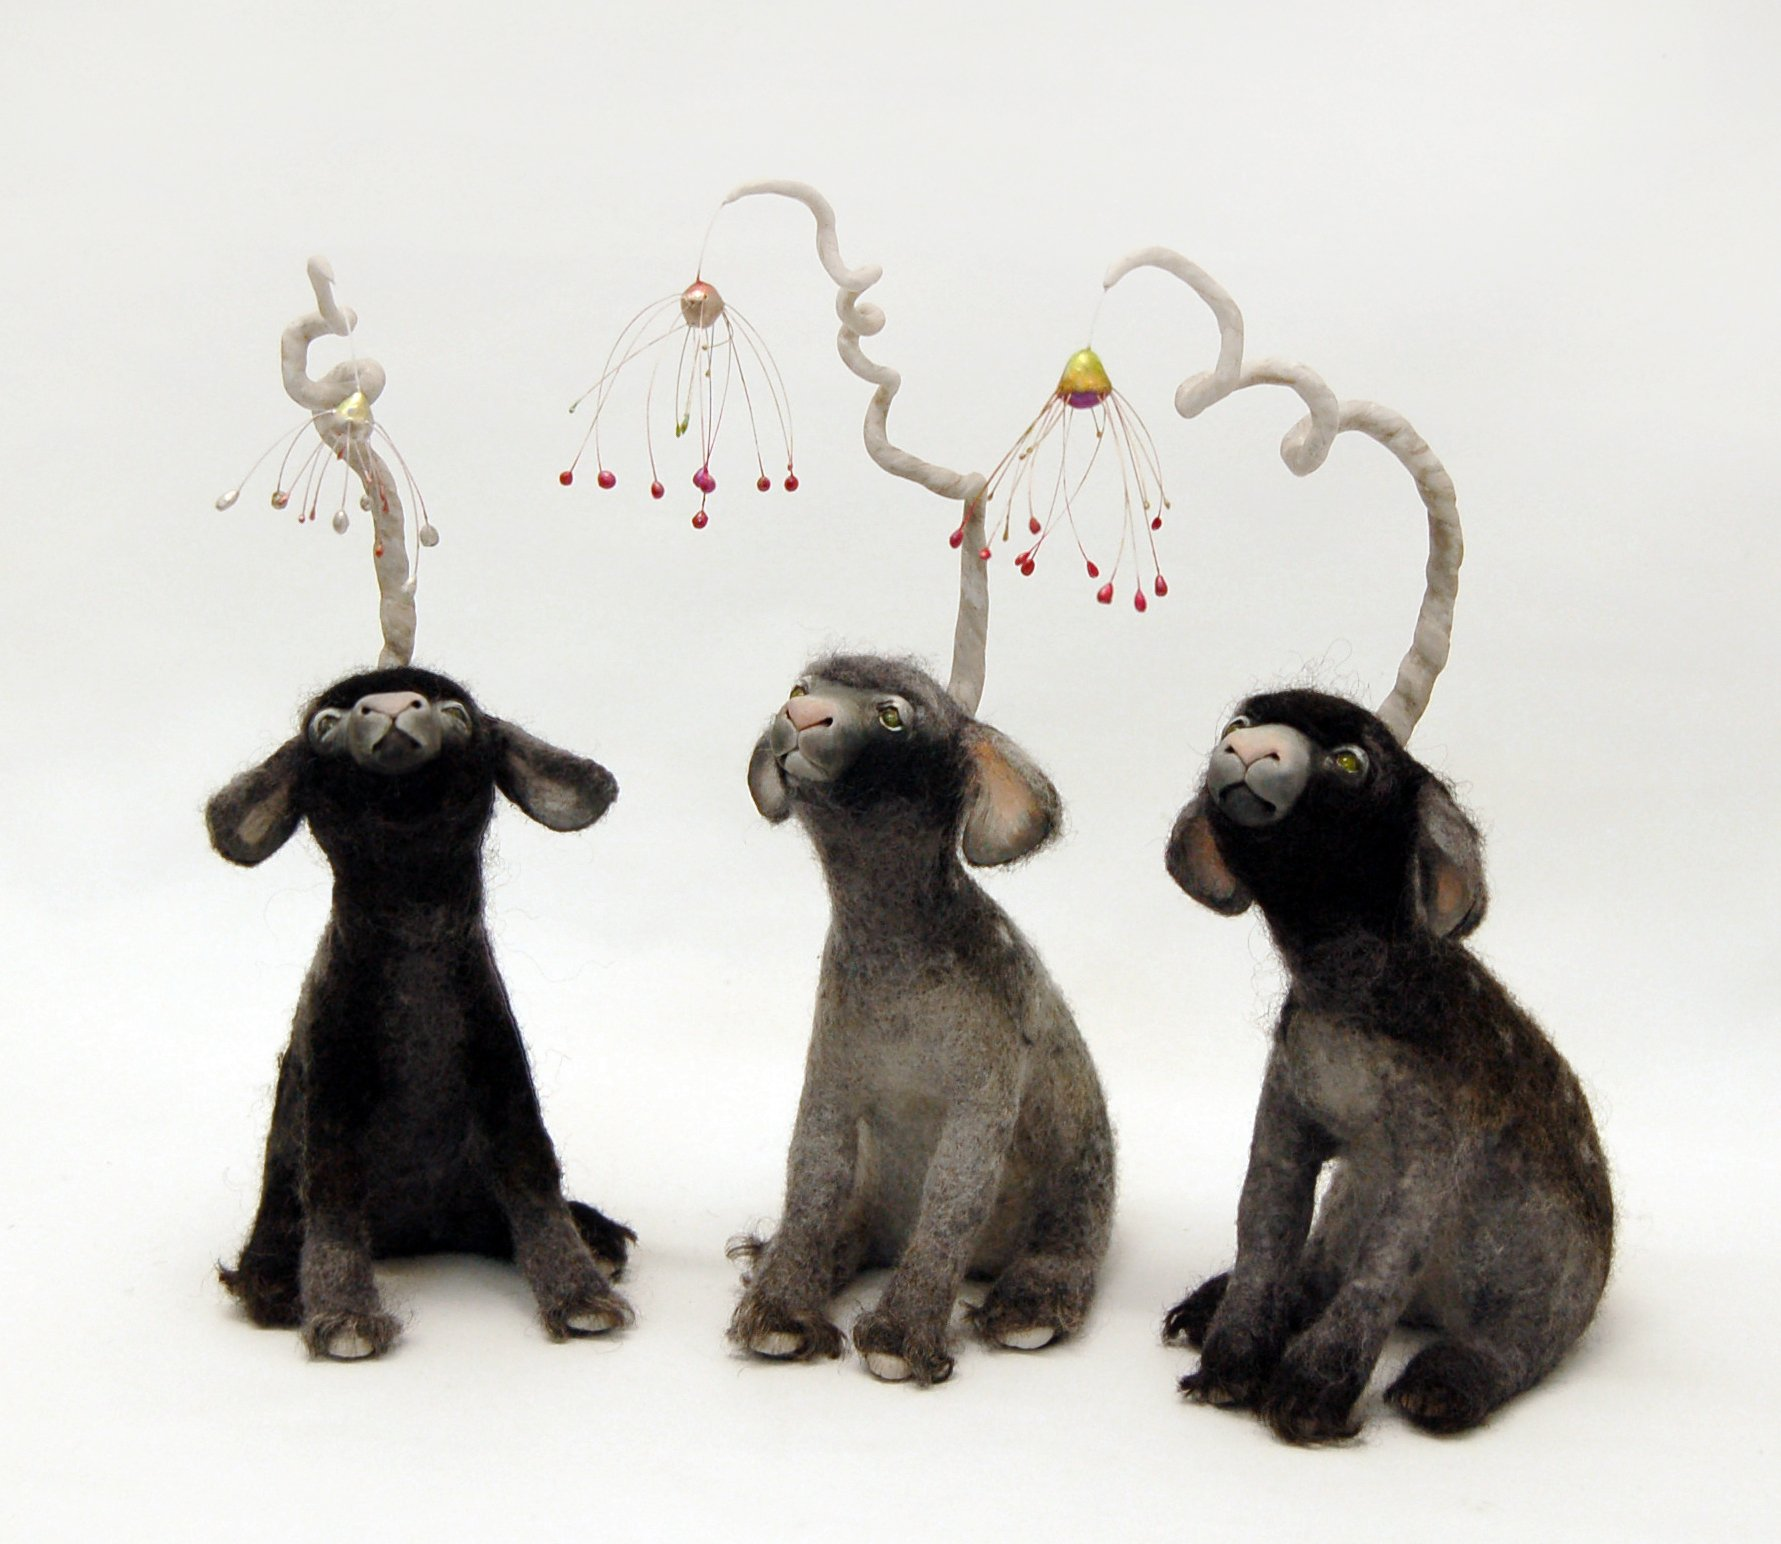 Felt and mixed media lamb sculpture by Karina Kalvaitis - all rights reserved